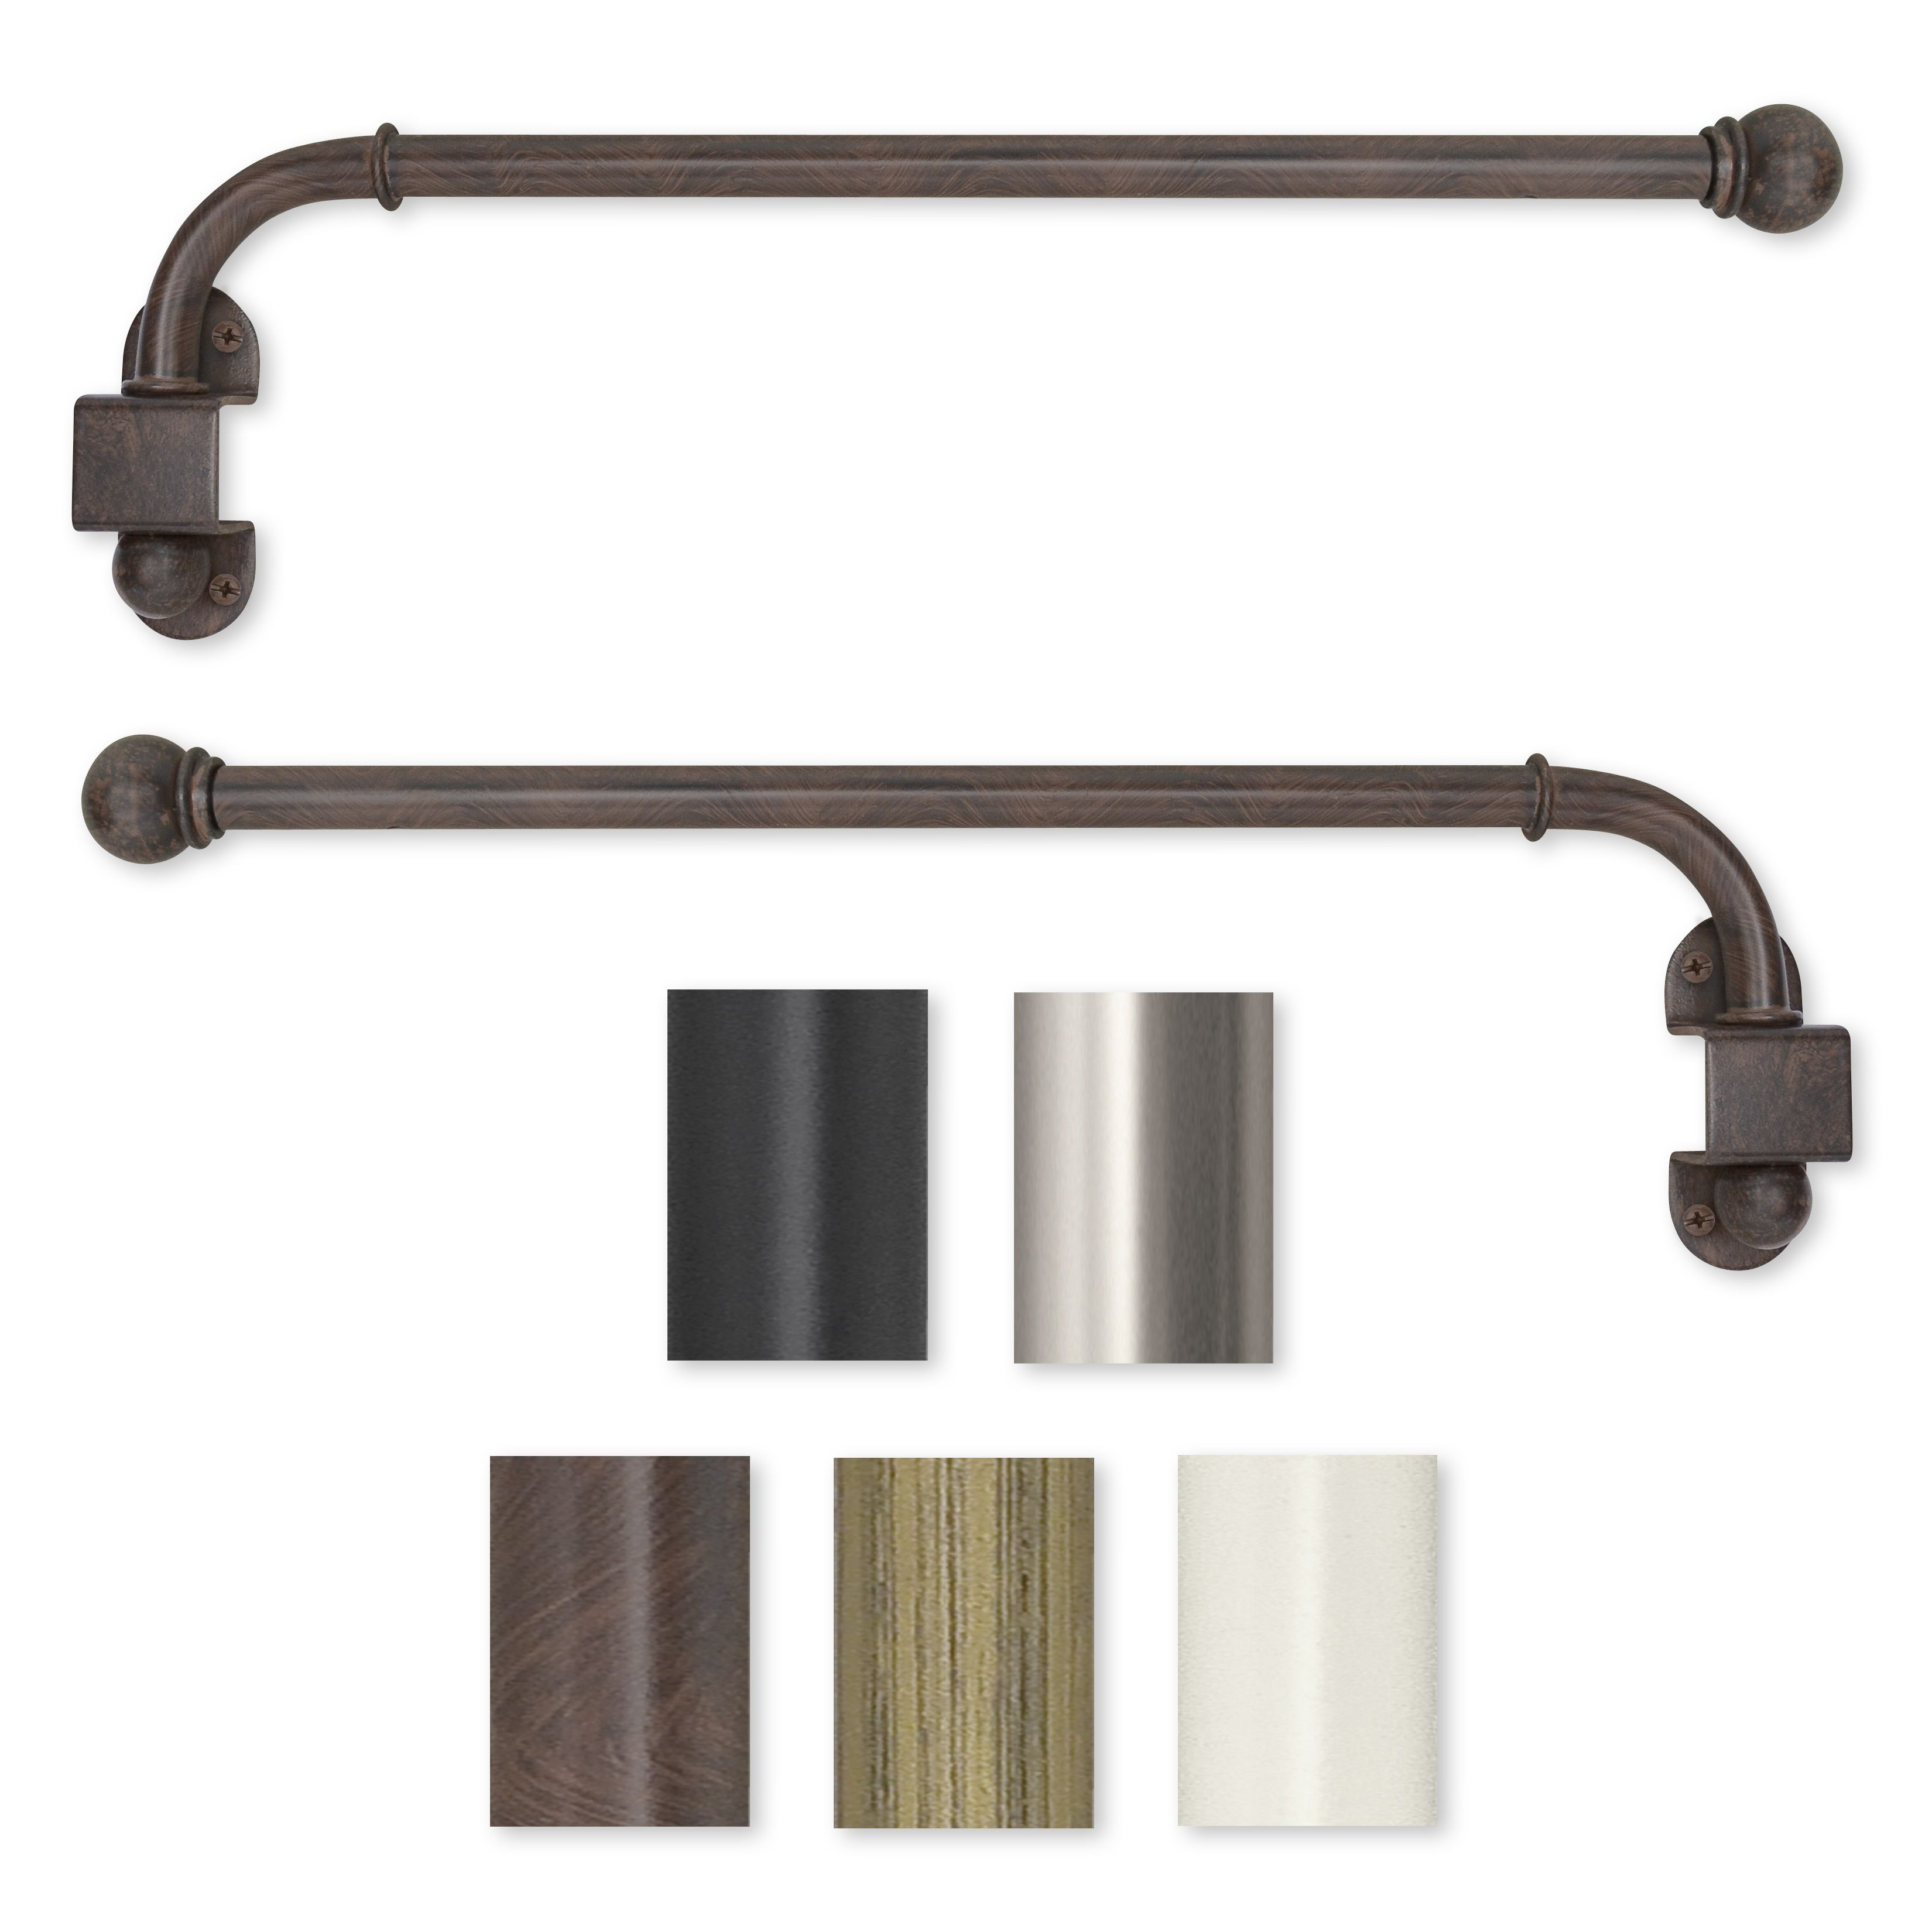 Swing Arm 24 To 38 Inch Adjustable Curtain Rod